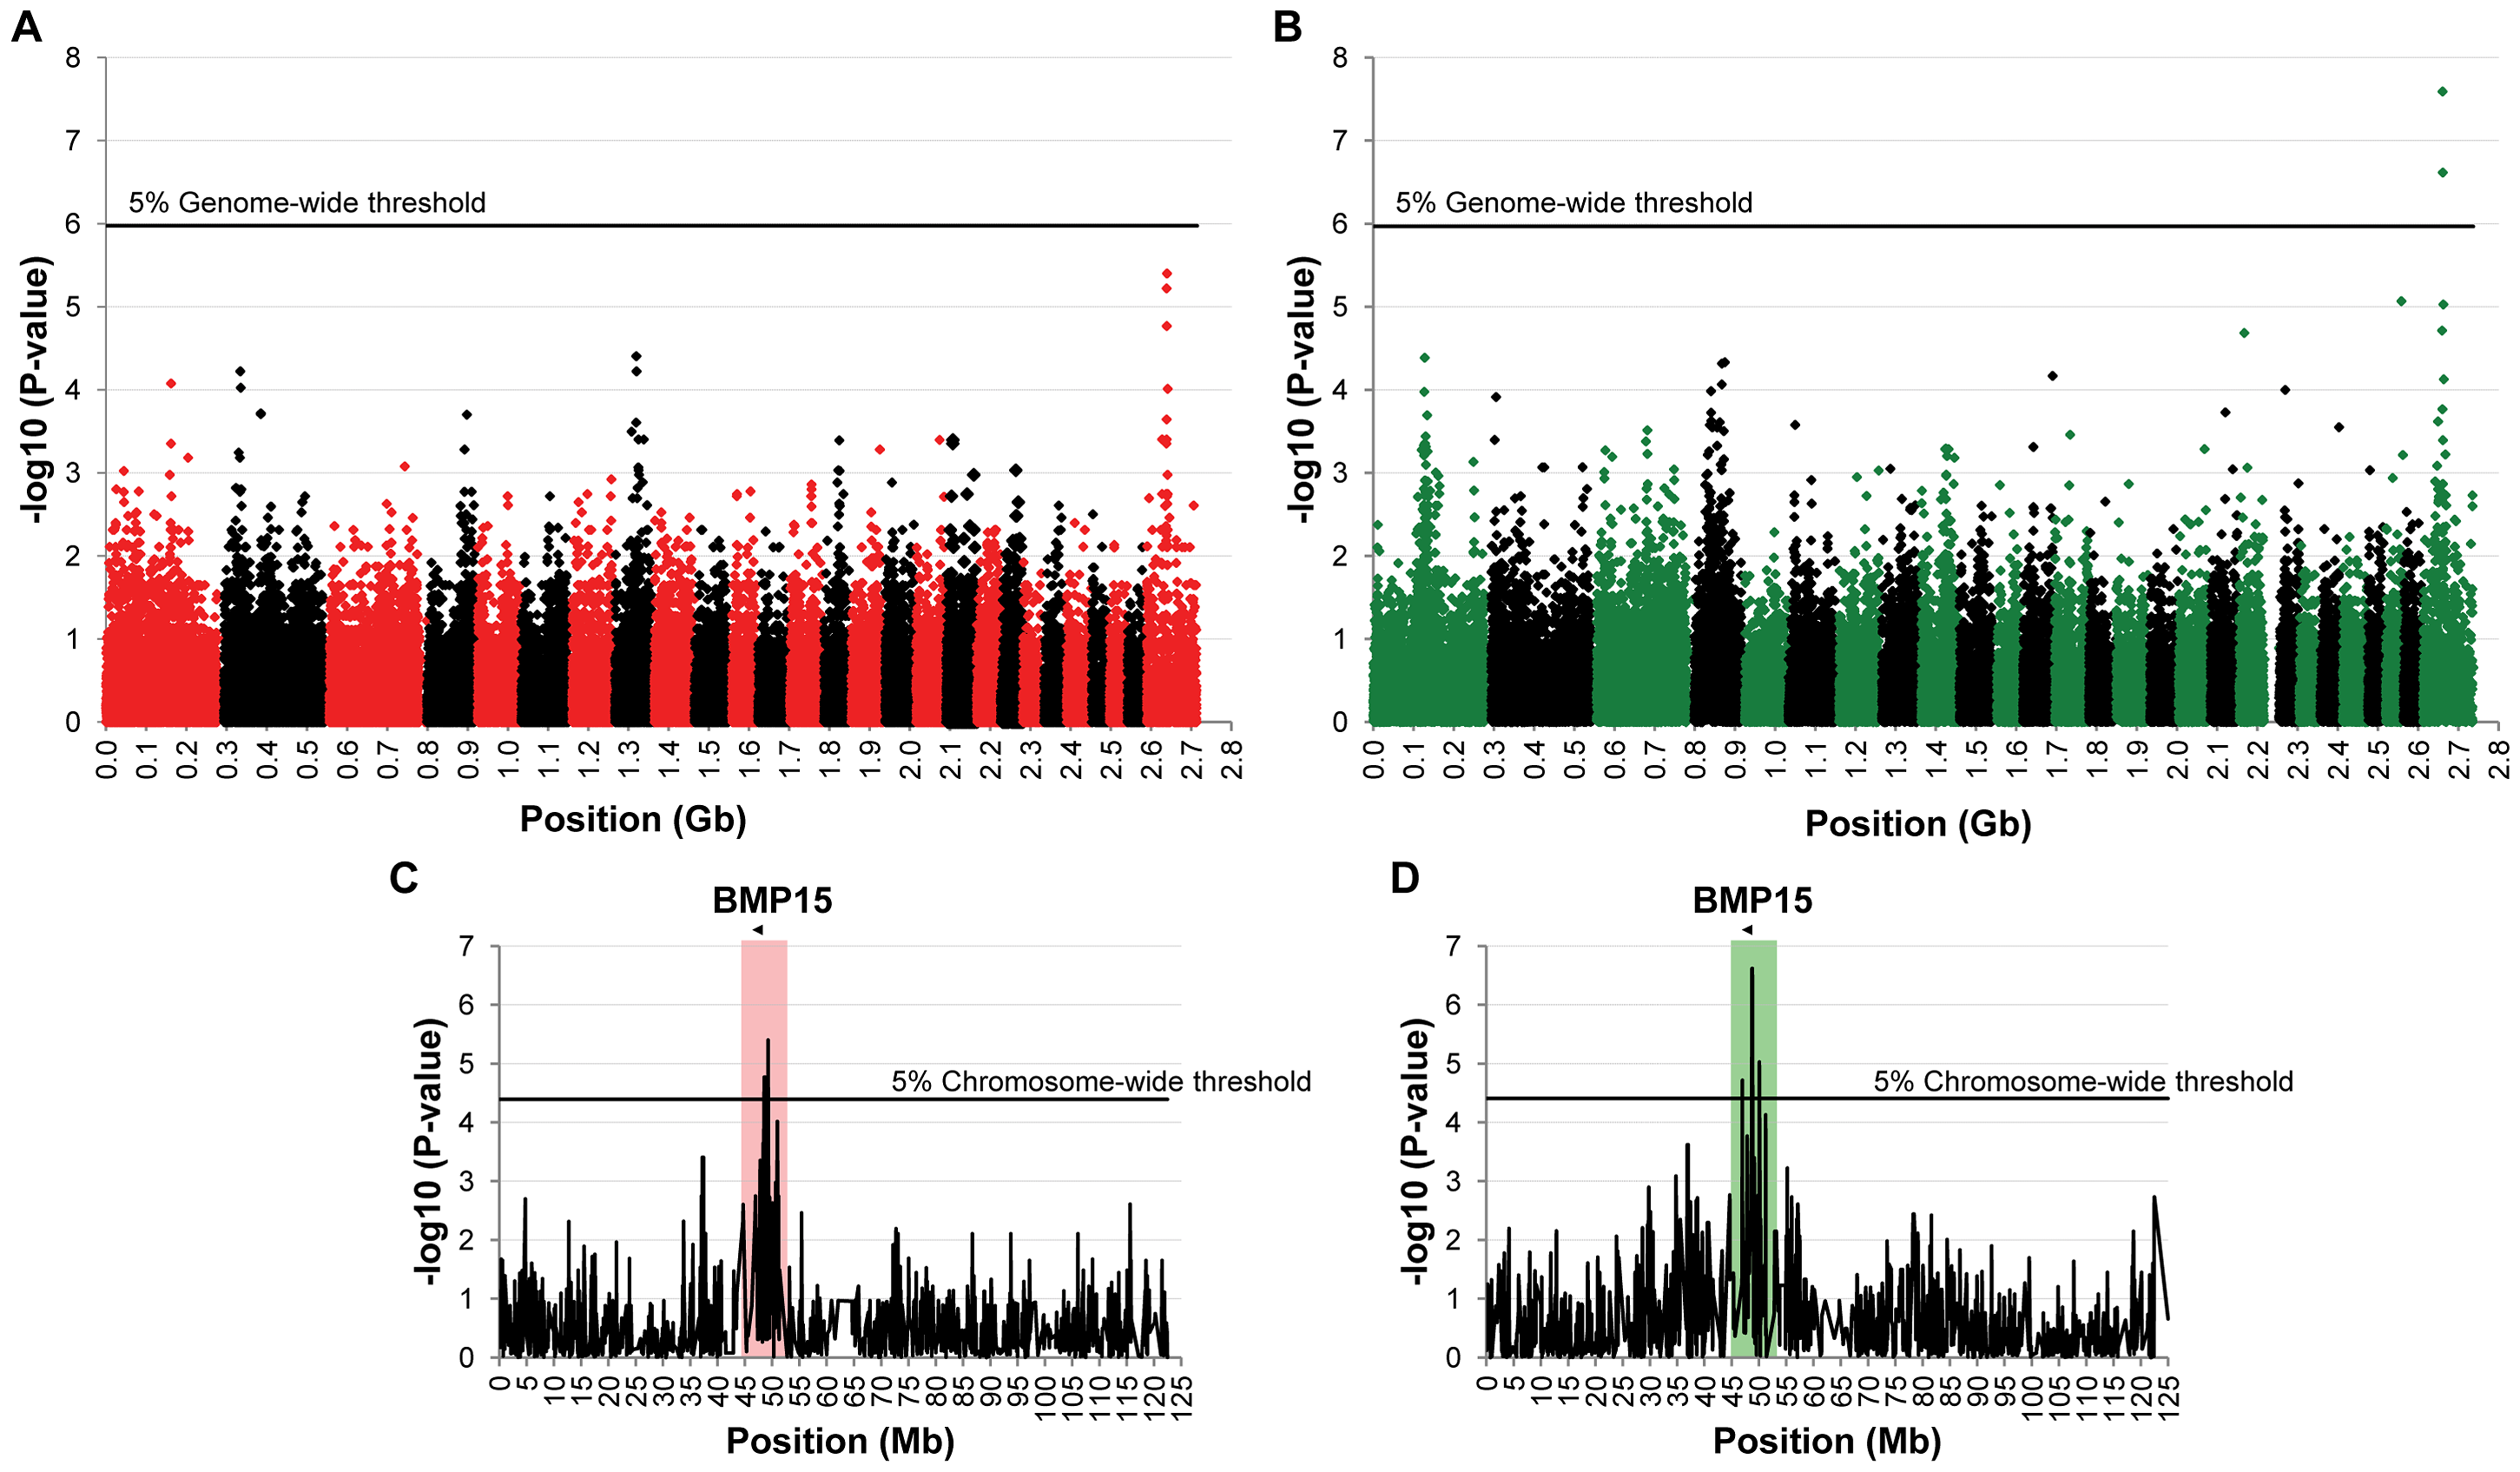 Genome-wide and chromosome-wide association results.